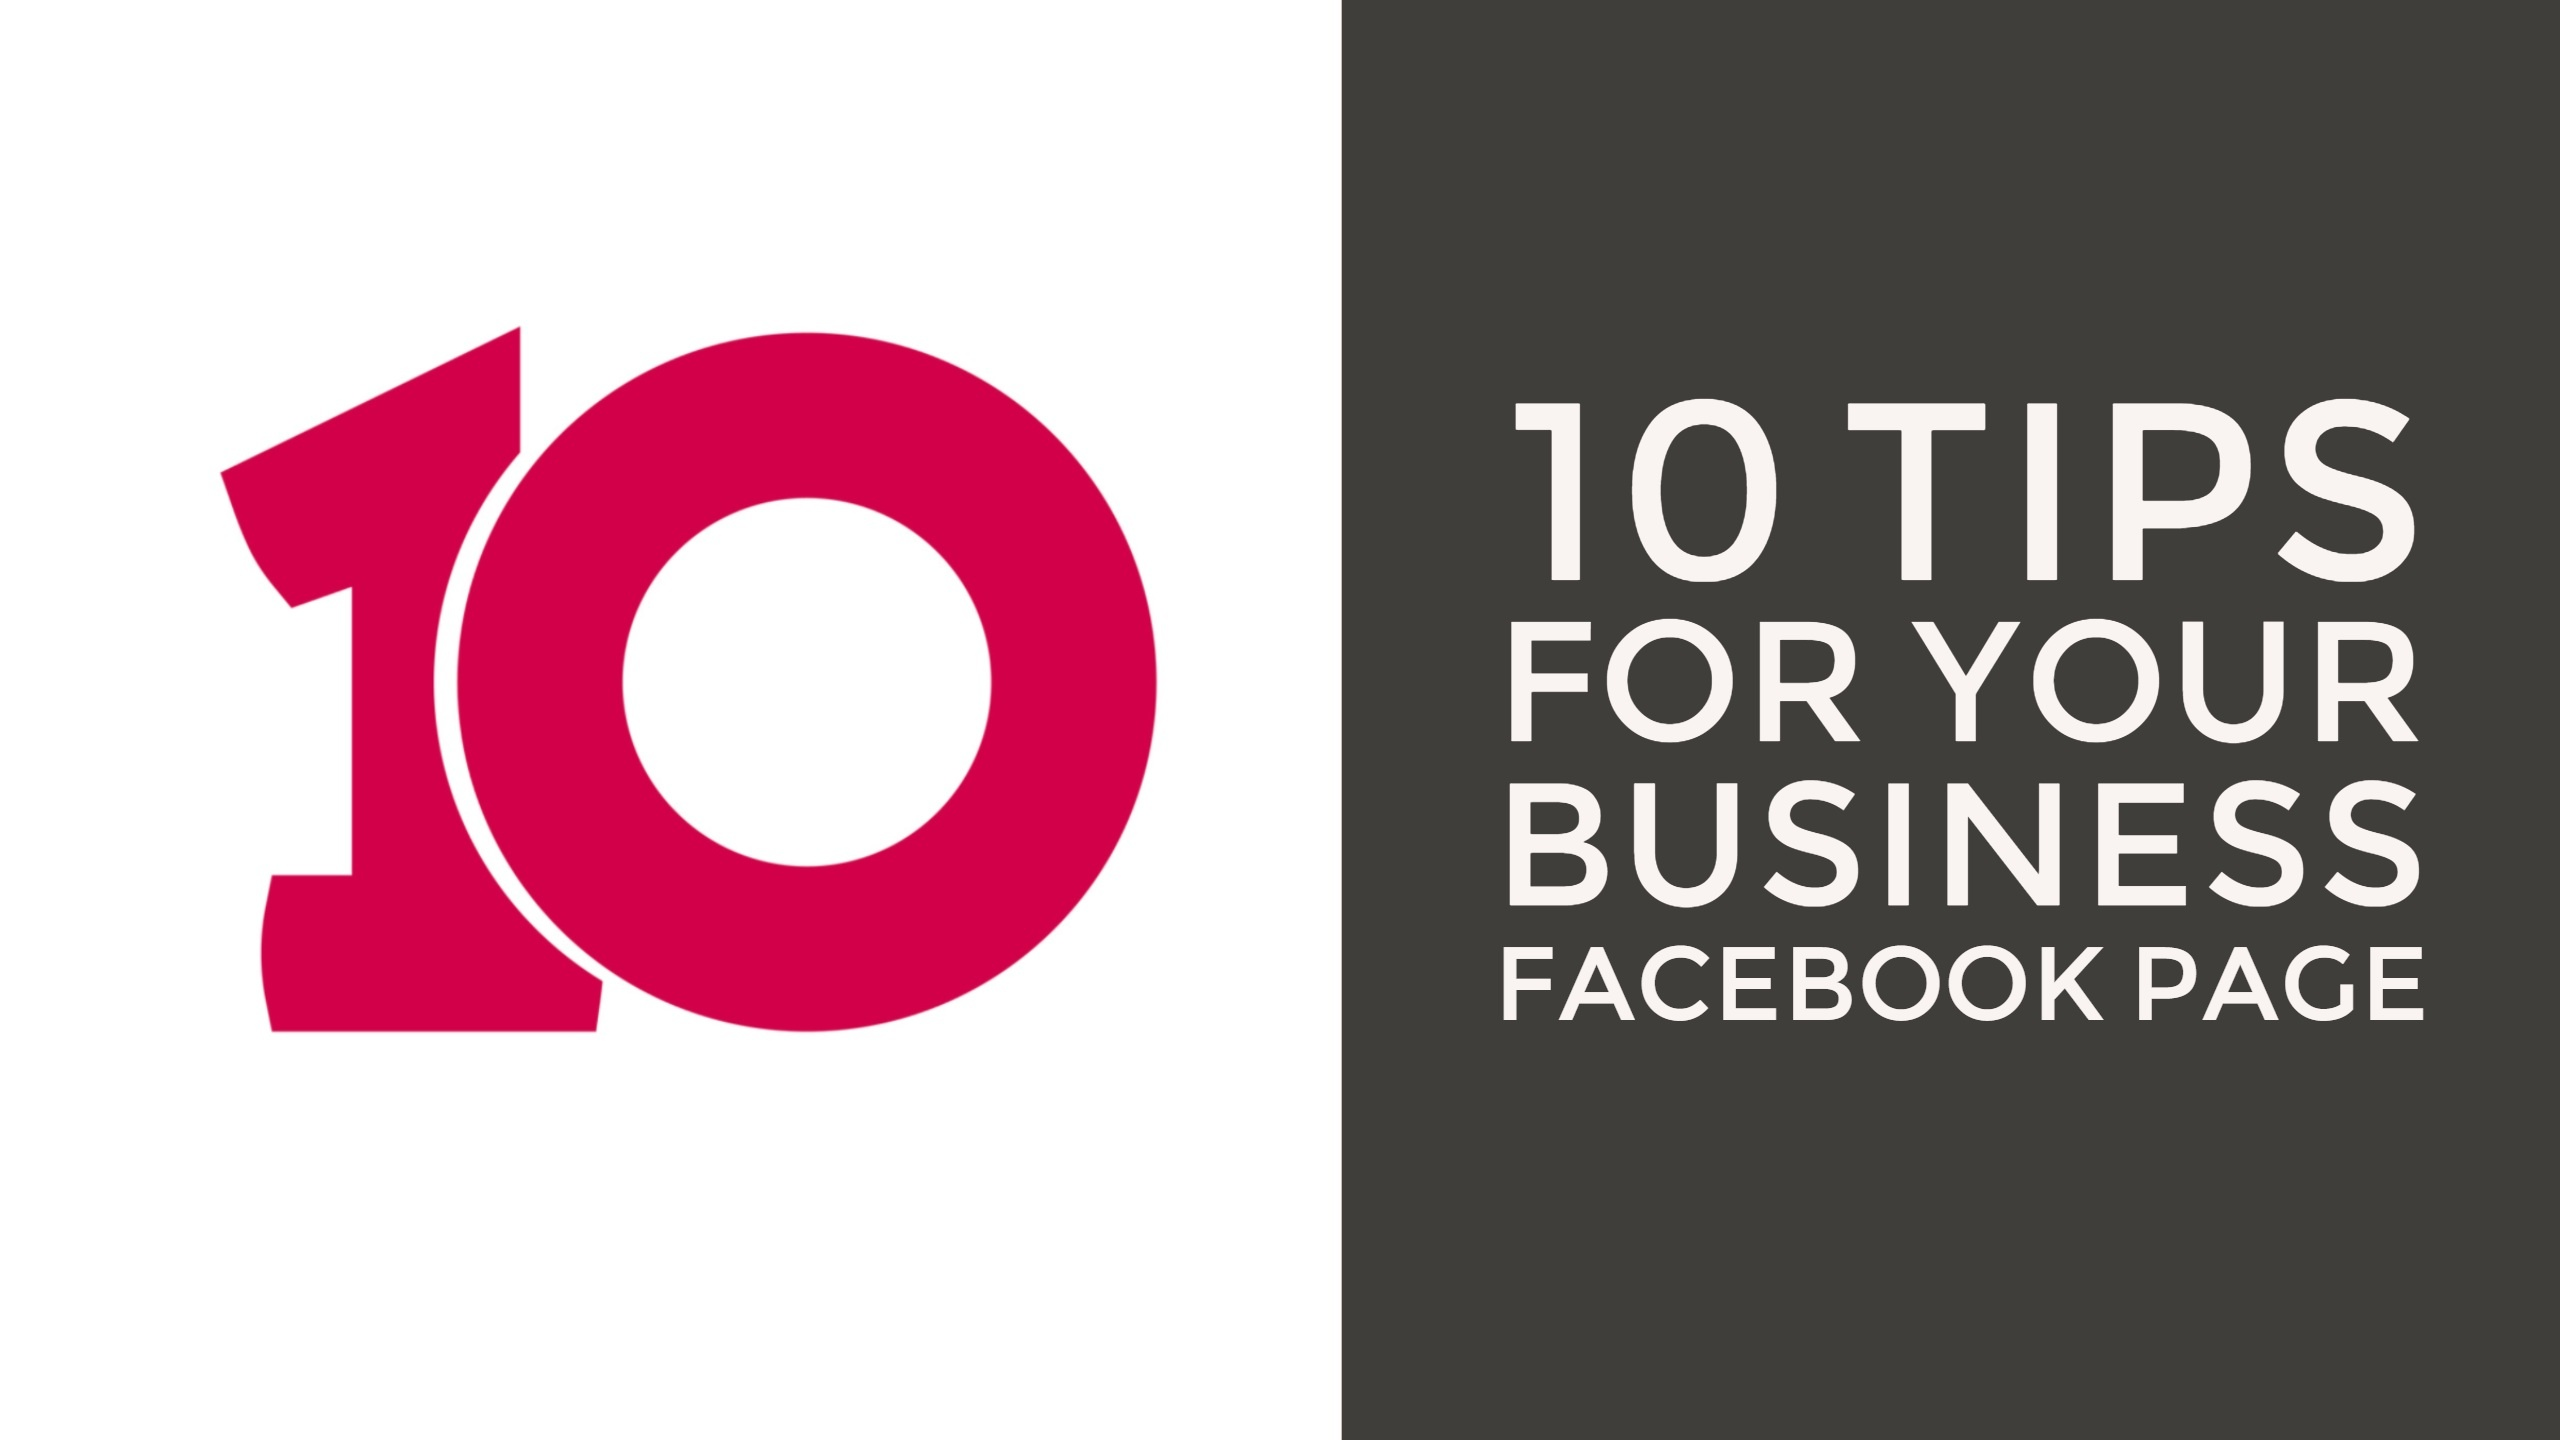 10 Tips for Your Business Facebook Page